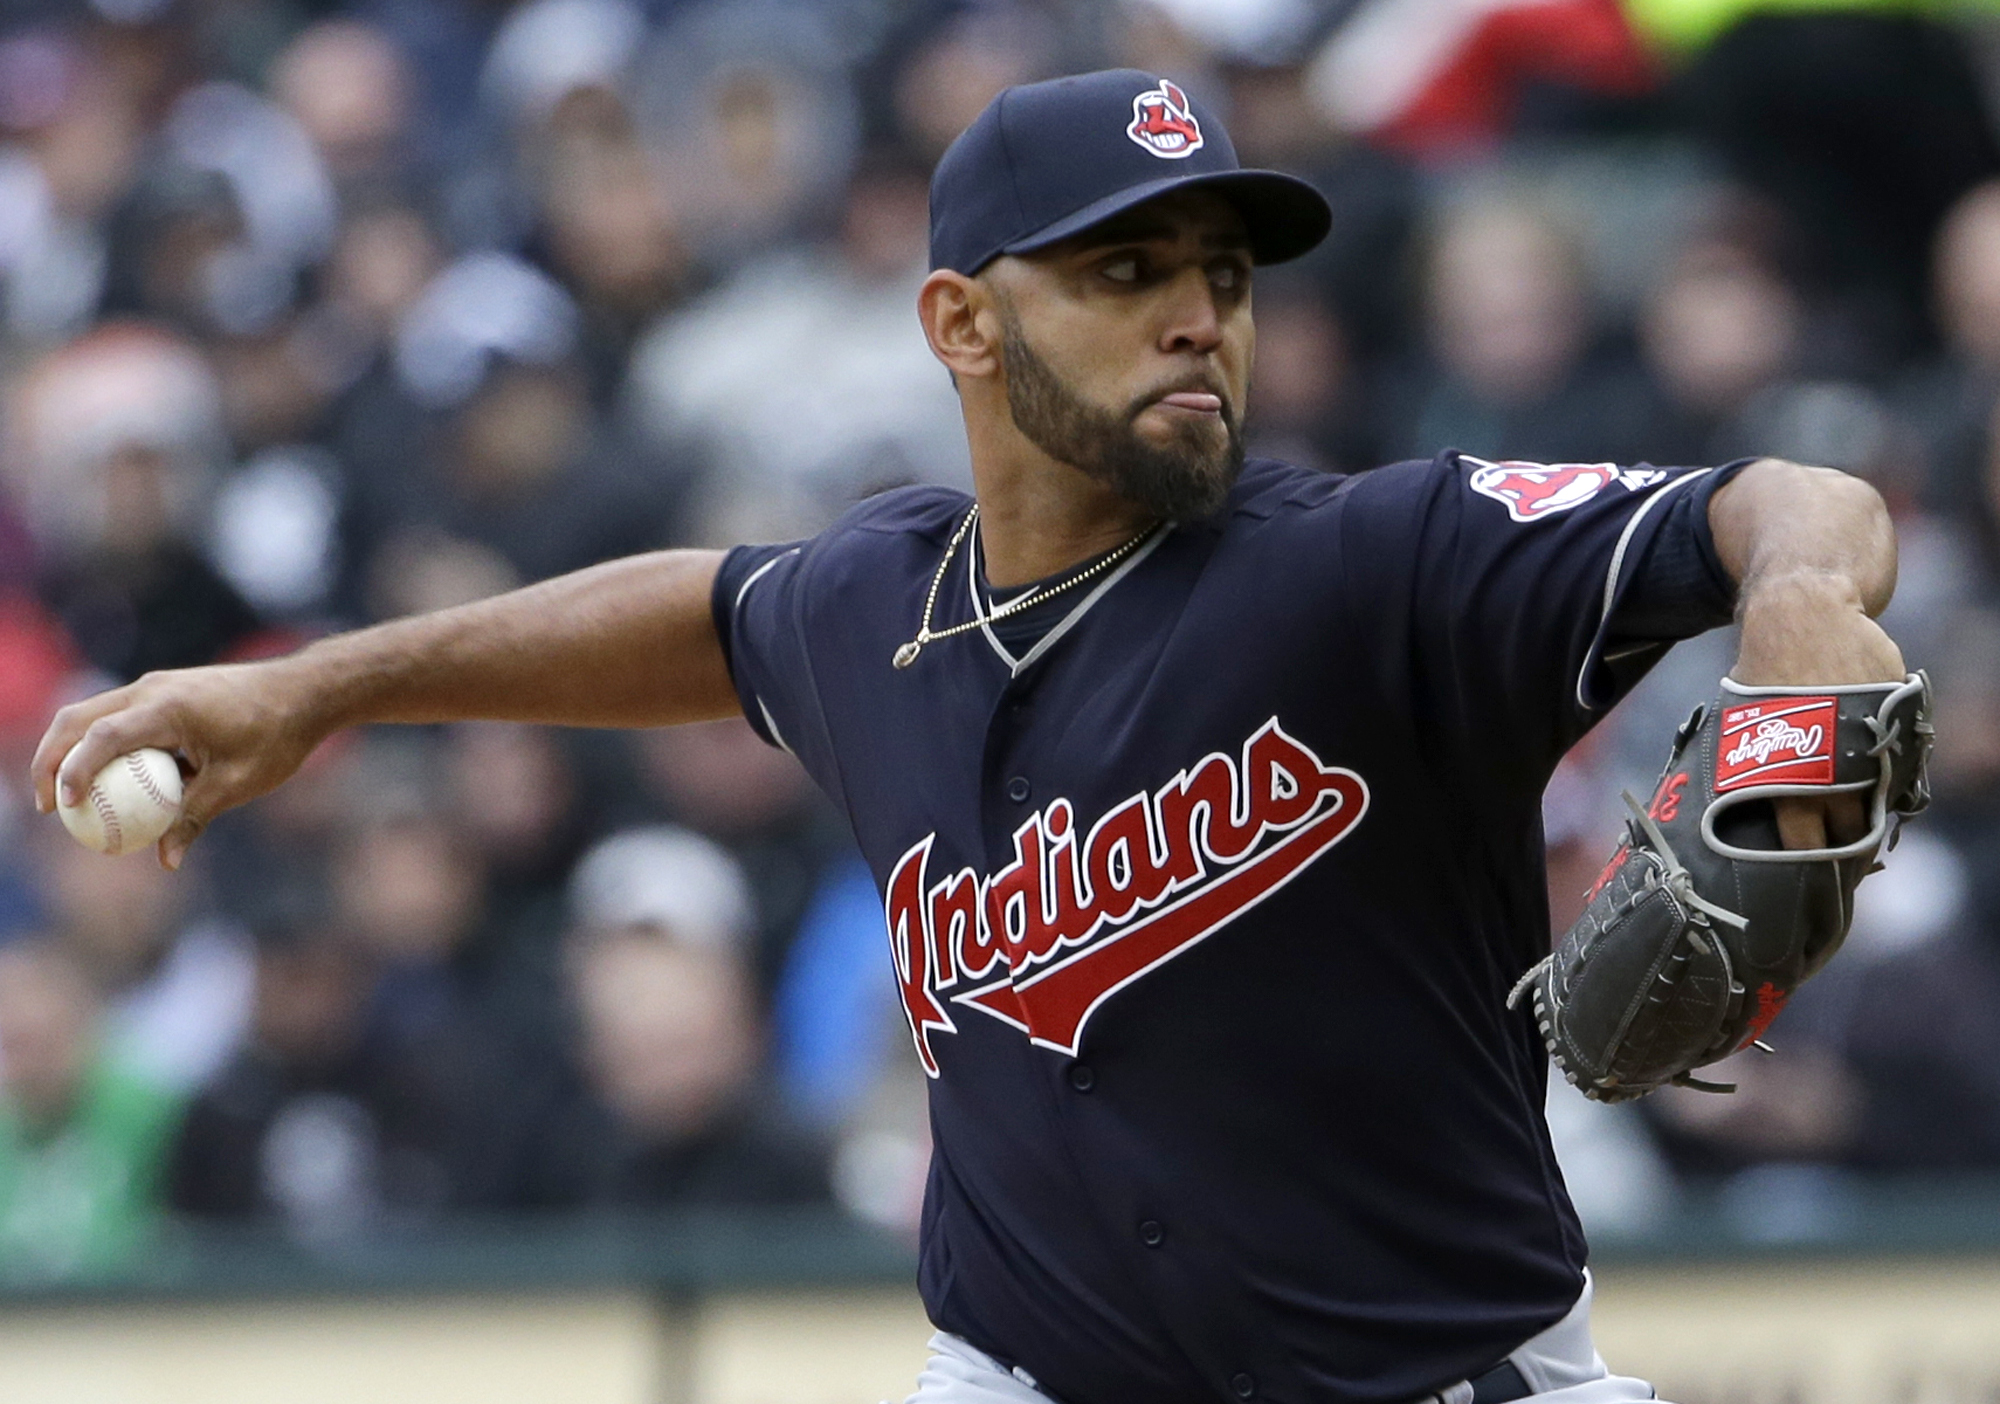 Cleveland Indians starter Danny Salazar throws against the Chicago White Sox during the first inning of a baseball game Friday, April 8, 2016, in Chicago. (AP Photo/Nam Y. Huh)